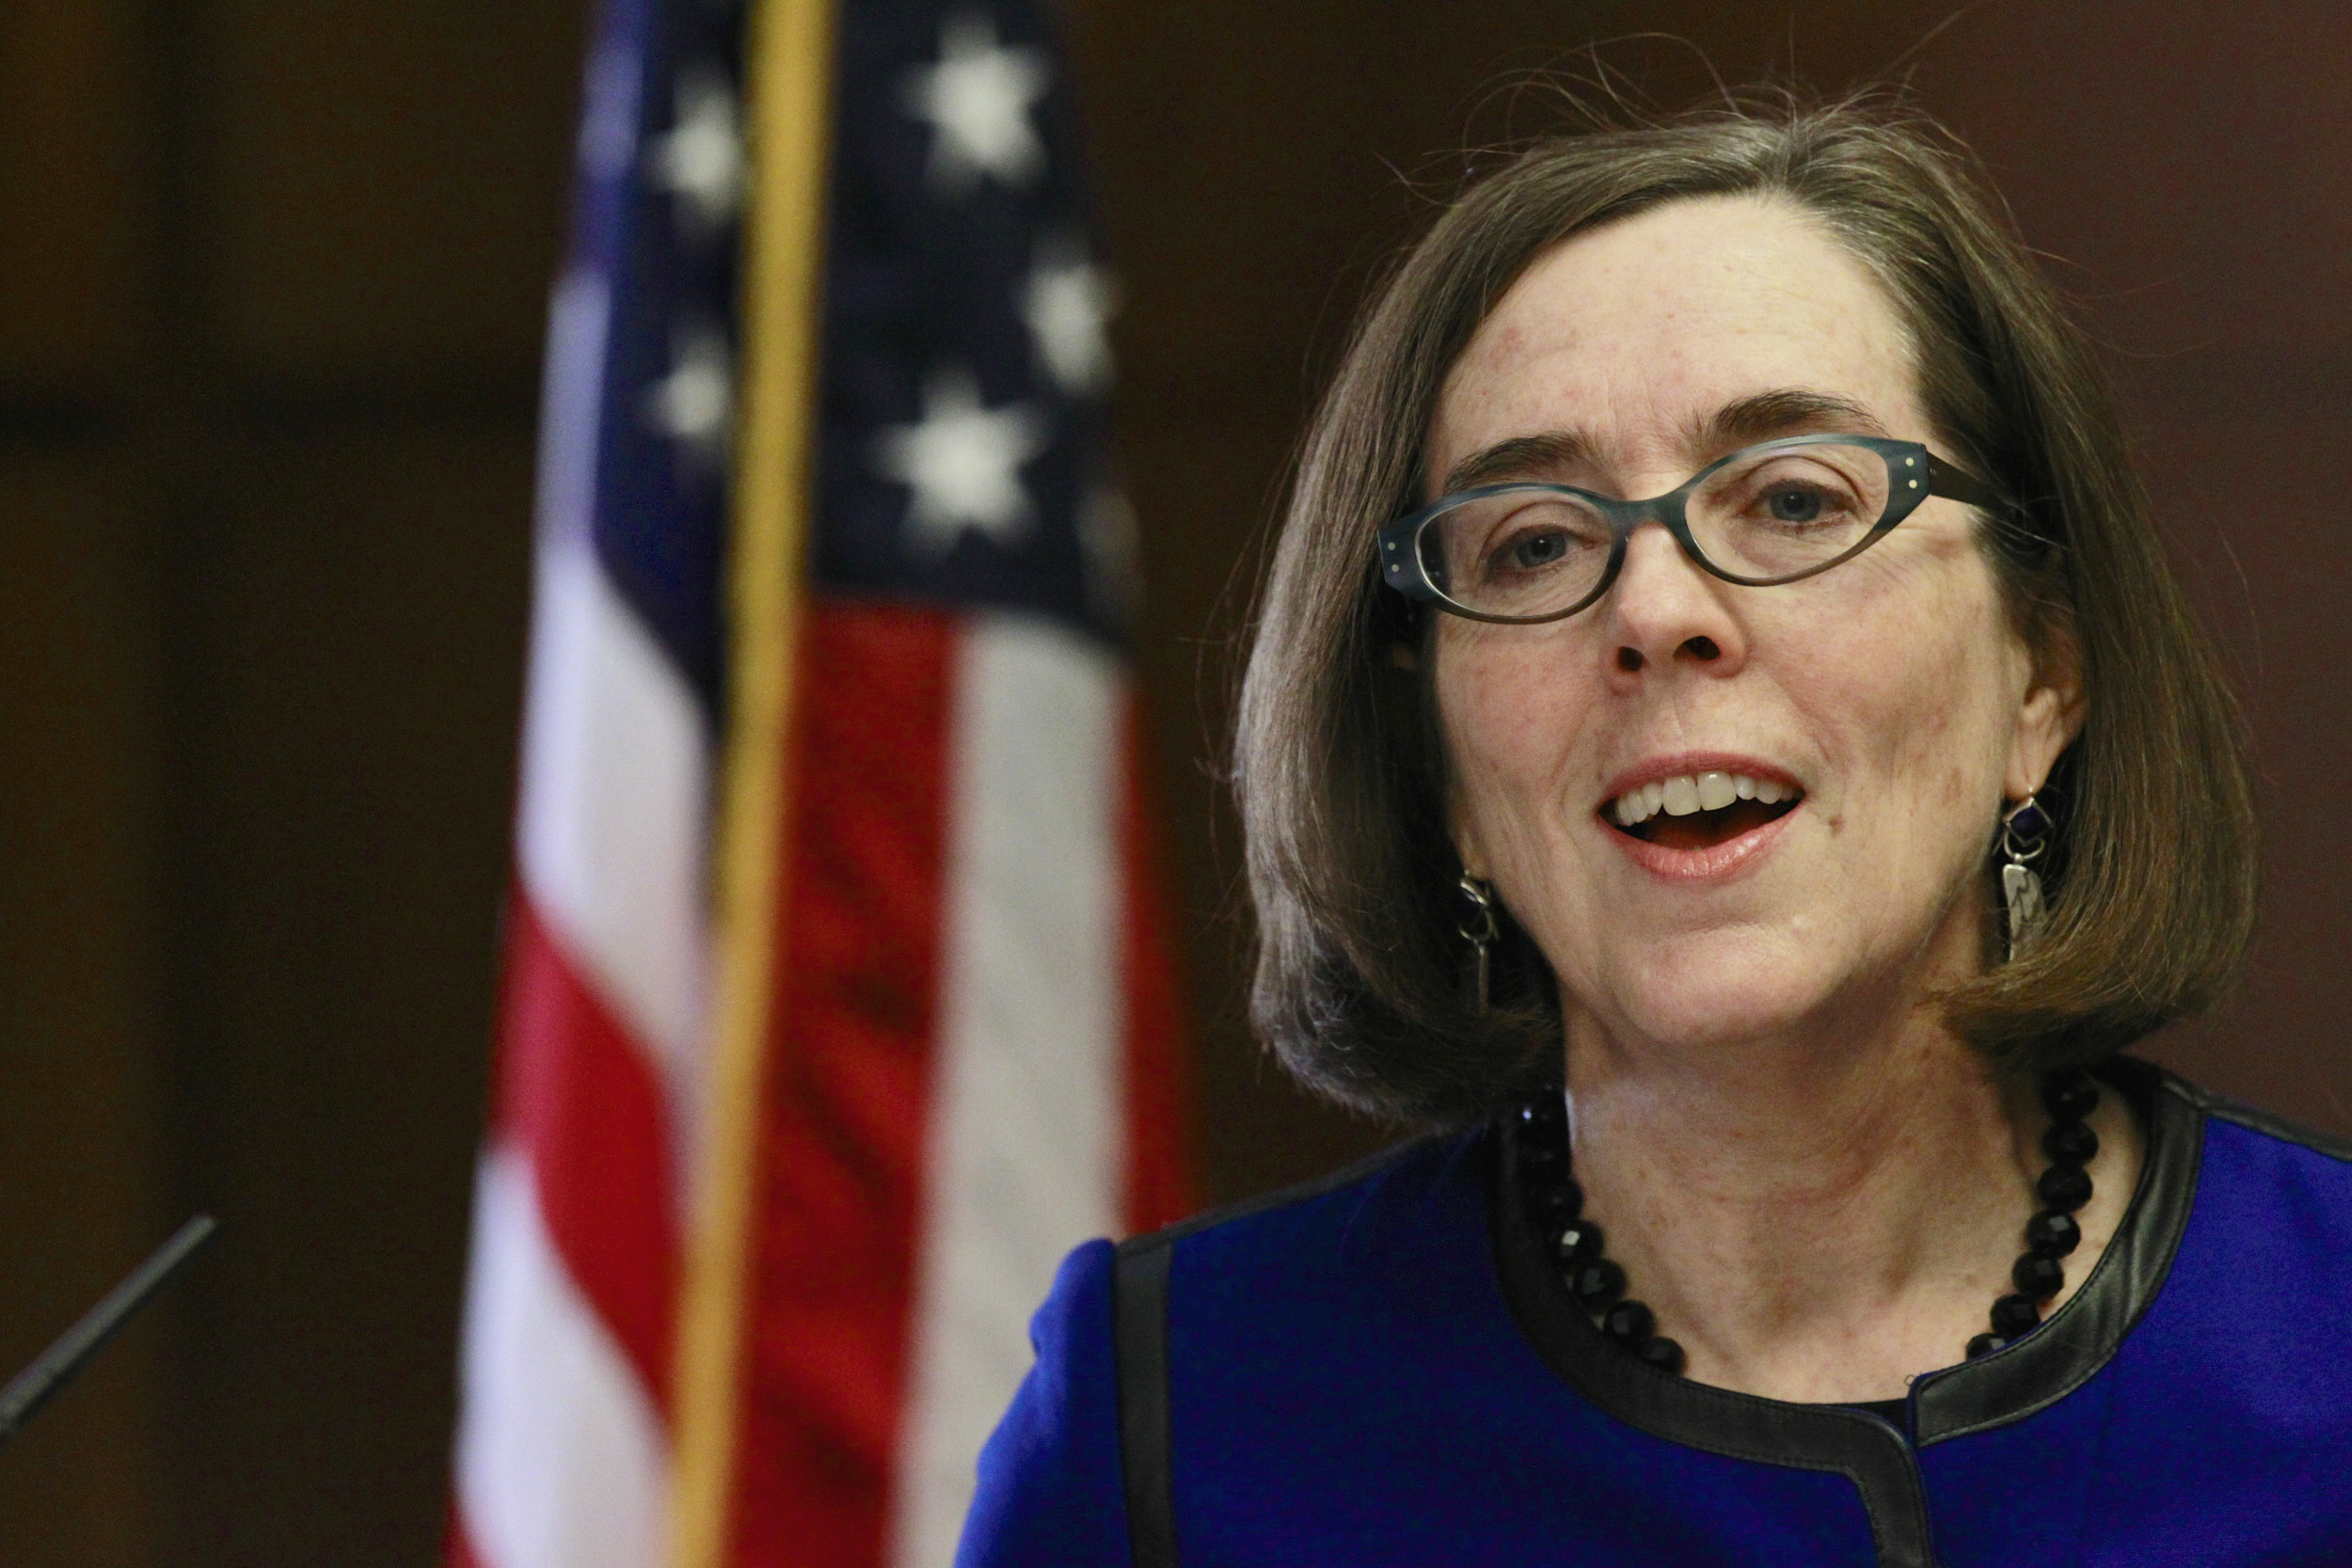 Oregon Governor Kate Brown speaks at the state capital building in Salem, Oregon, February 20, 2015. Brown, a liberal Democrat from Portland, outlined her policy agenda on Friday in her first media event since she took the helm of the Pacific Northwest state to replace John Kitzhaber, whose decades-long political career dissolved in the wake of an influence-peddling scandal involving his fiancee.